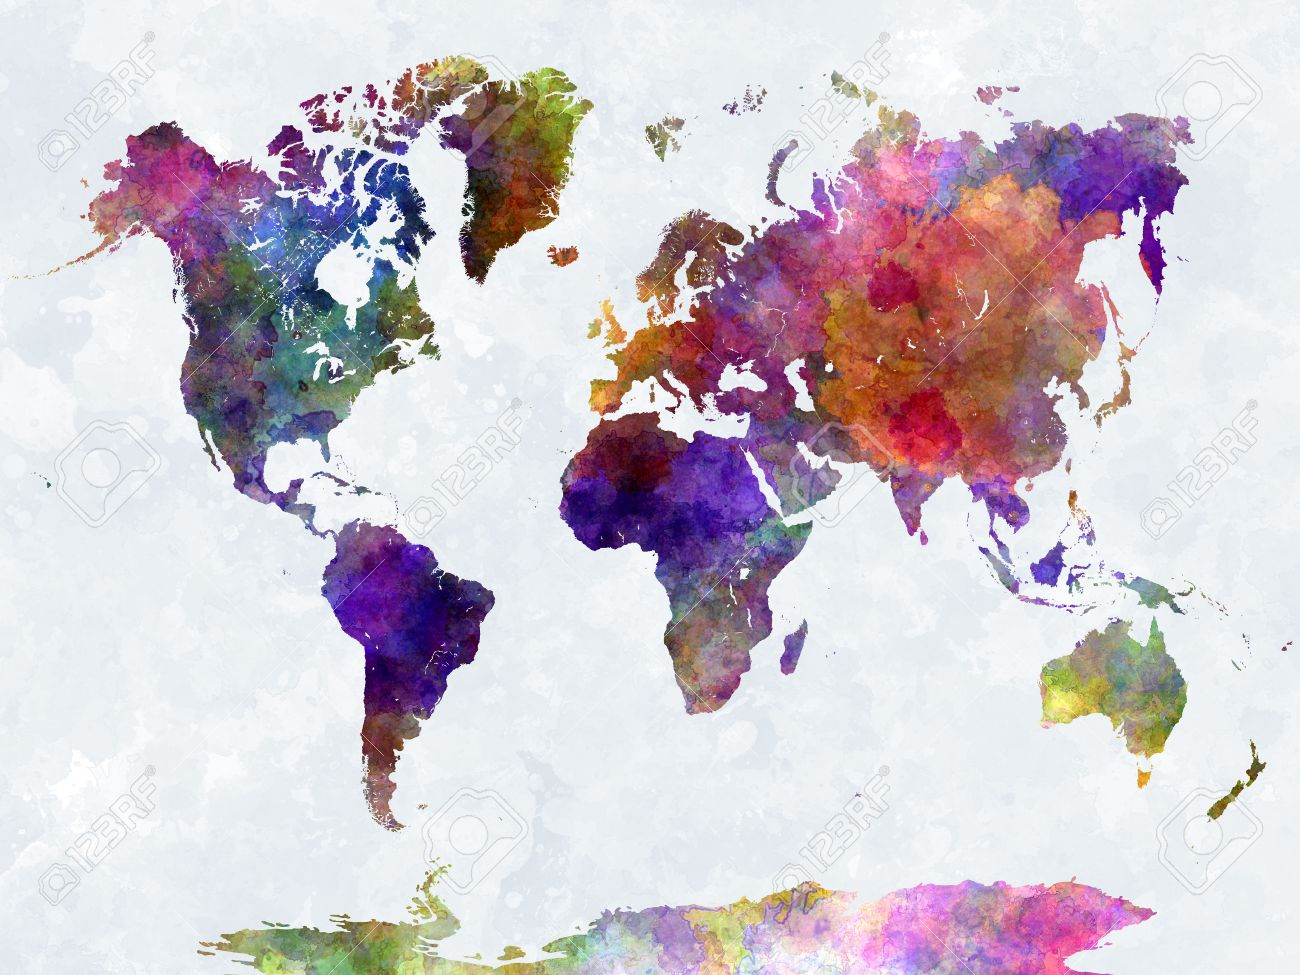 World map in watercolor painting abstract splatters